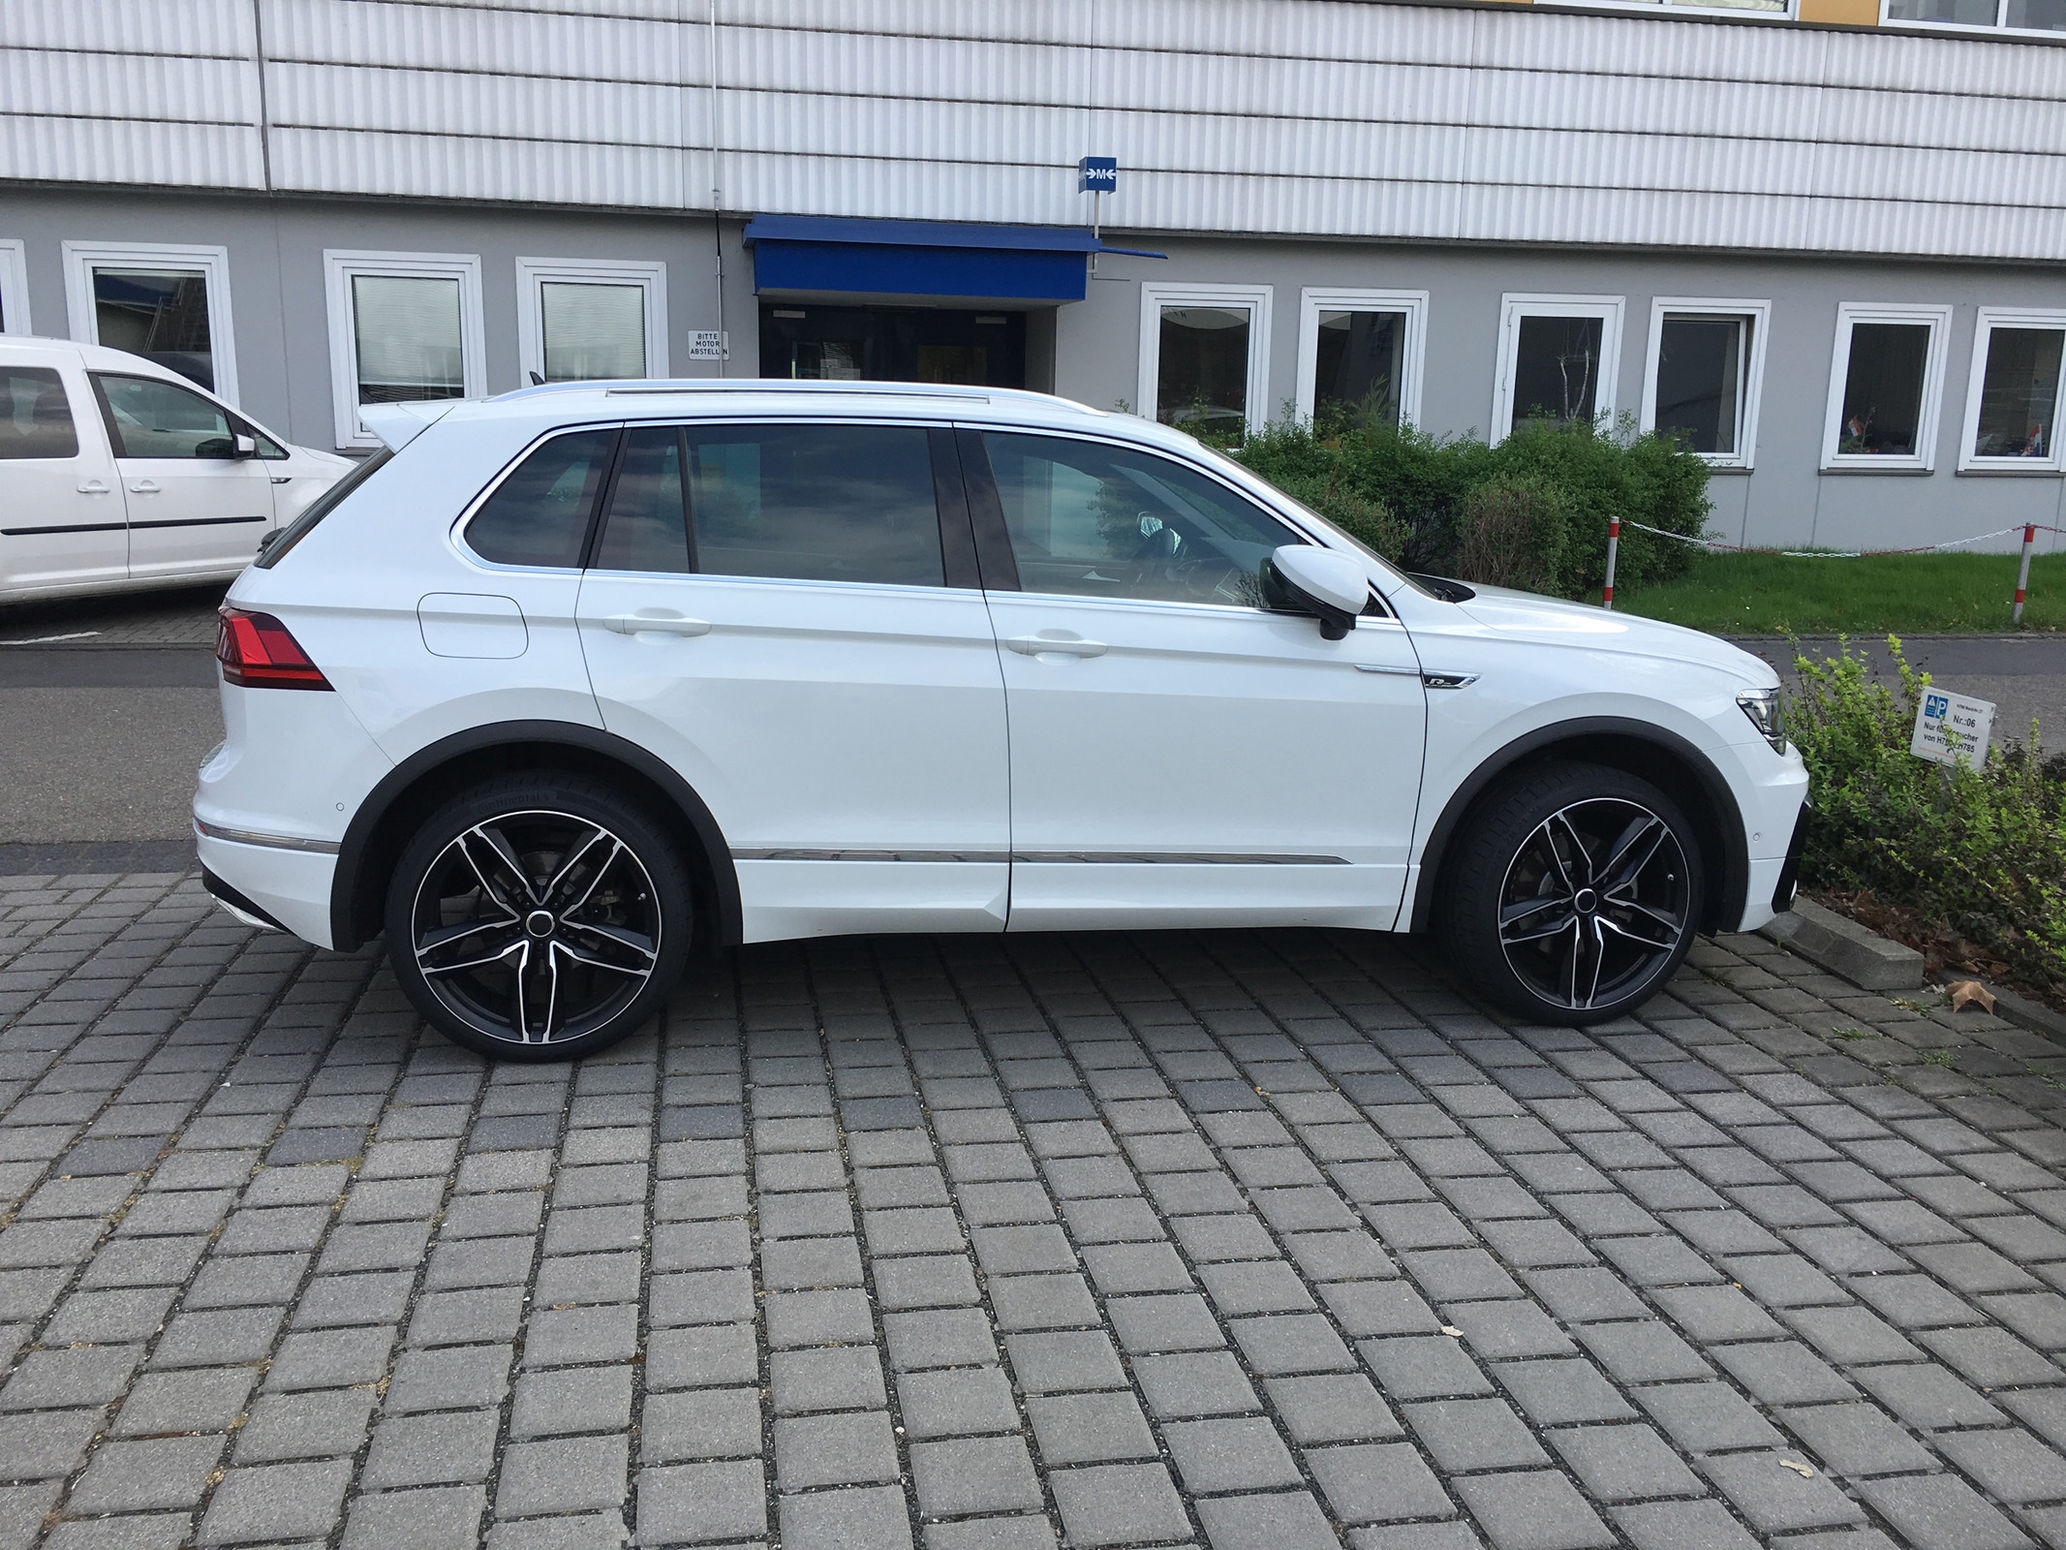 news alufelgen vw tiguan ii 21zoll alufelgen felgen 9x21 reifen 255 35zr21 sommerr der. Black Bedroom Furniture Sets. Home Design Ideas